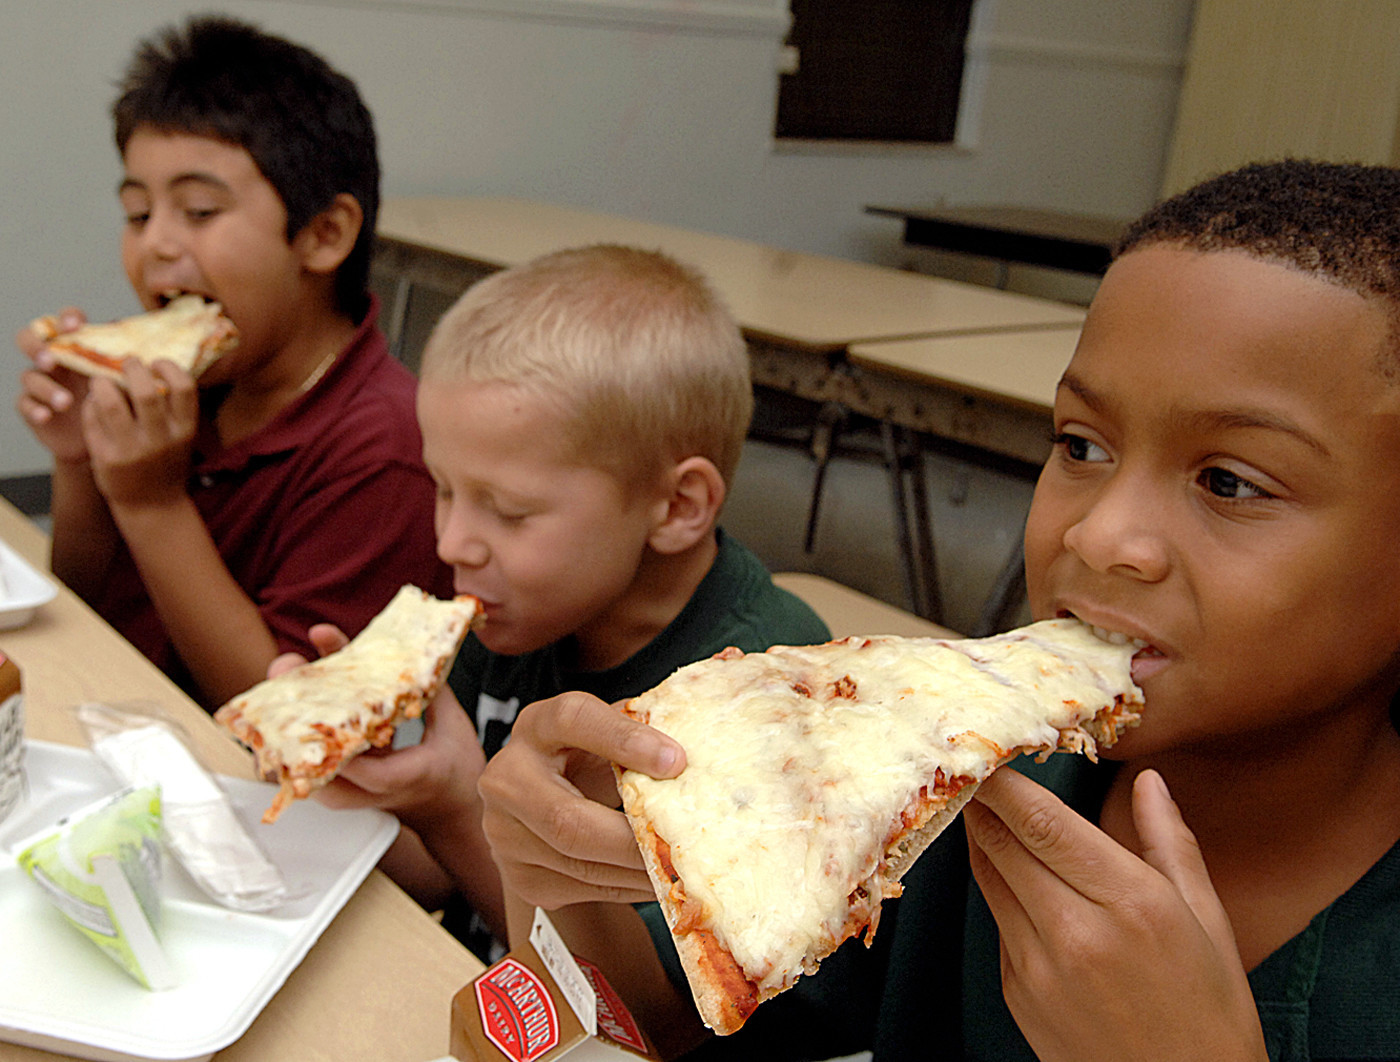 More Than 100 Broward Schools Now Serve Free Supper  Sun. Body Building Com Coupons 10 Off. Home Equity Loan Rates Massachusetts. Good Morning Animated Pictures. Hair Removal Philadelphia Remote Home Monitor. Kids And Energy Drinks Ca Car Insurance Rates. Physical Therapy Requirements Texas. Using Social Media To Recruit. Apartment Moving Companies Redo Backup Linux